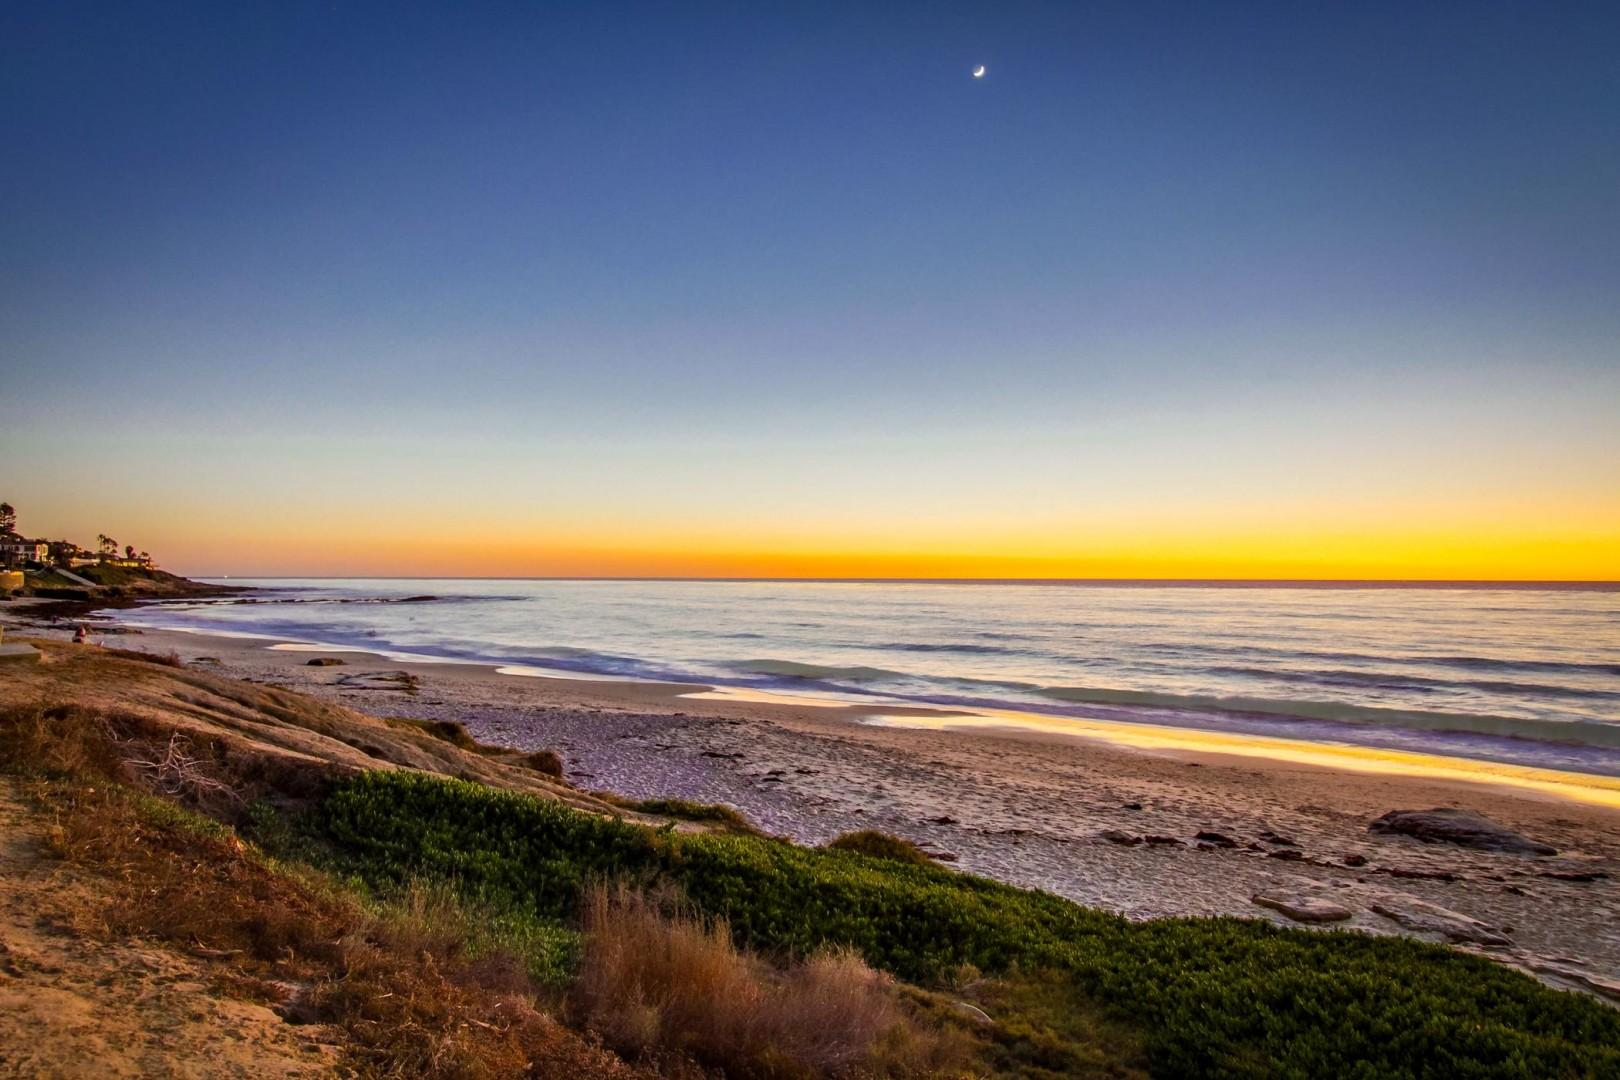 Looking south down the beach at a gorgeous golden sunset